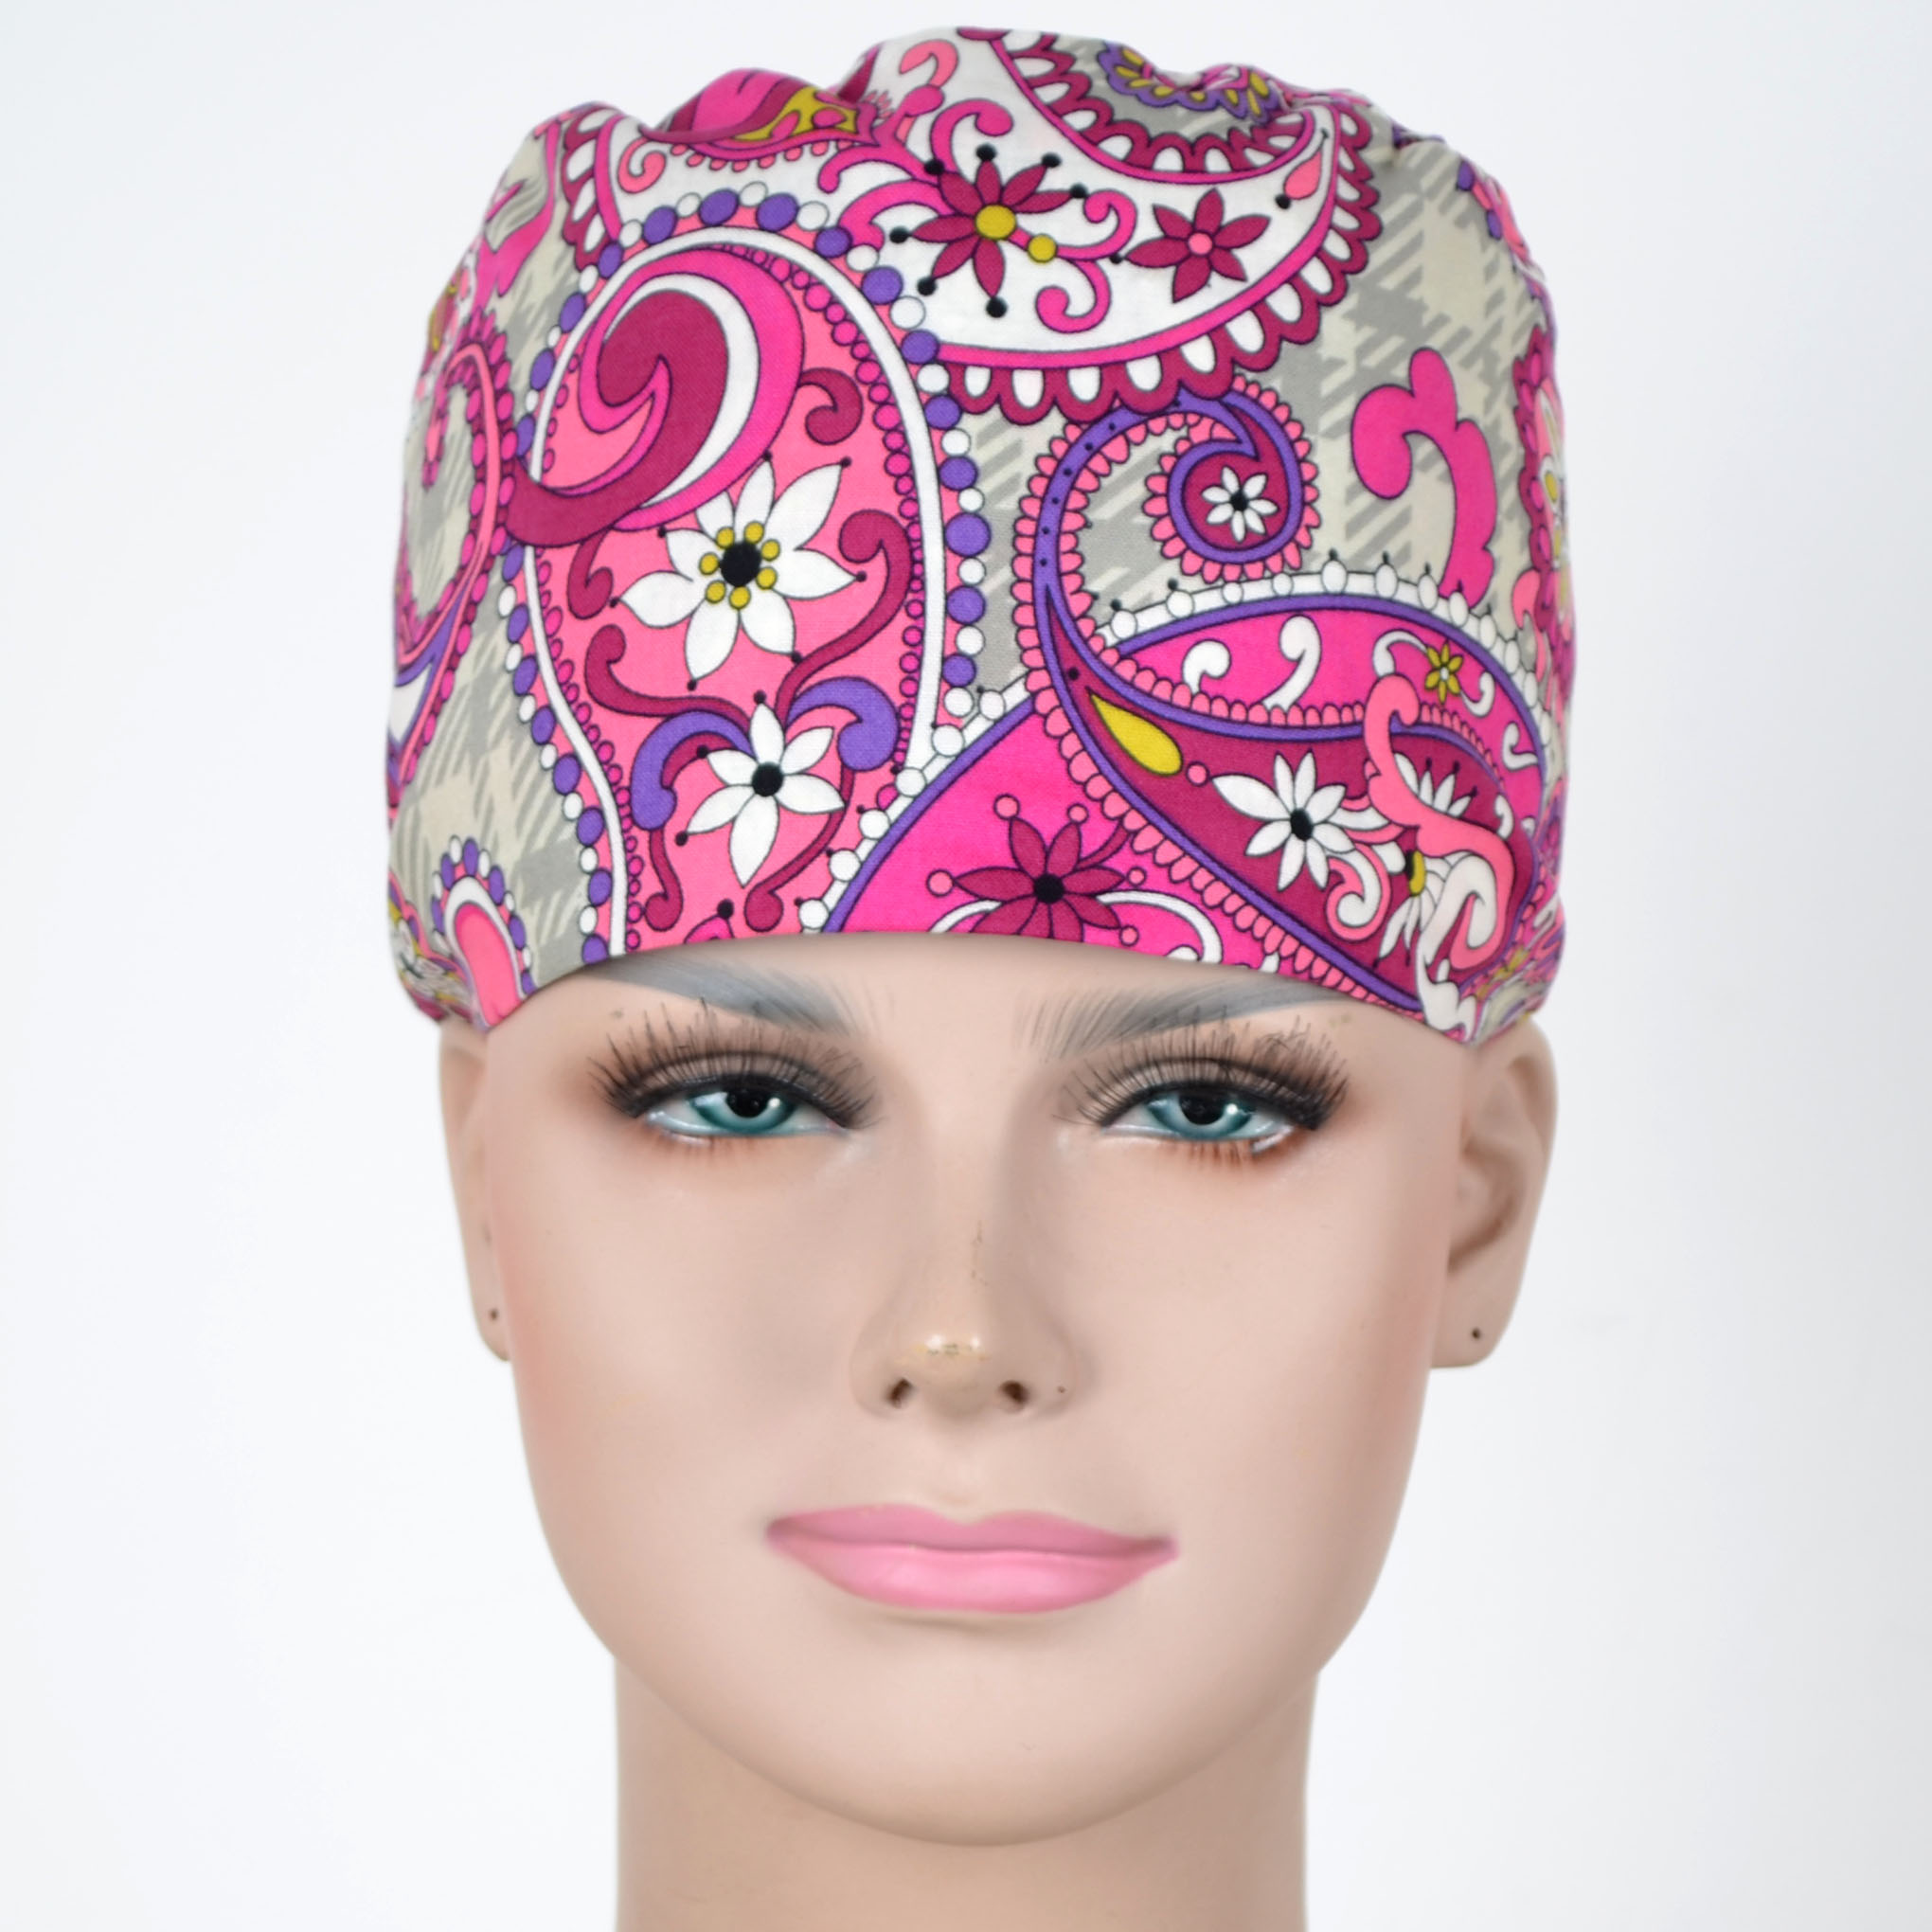 Hennar Women Cotton Scrub Caps  For Hospital Medical Hats Print Adjustable Unisex Surgical Caps In Grey With Floral Prints